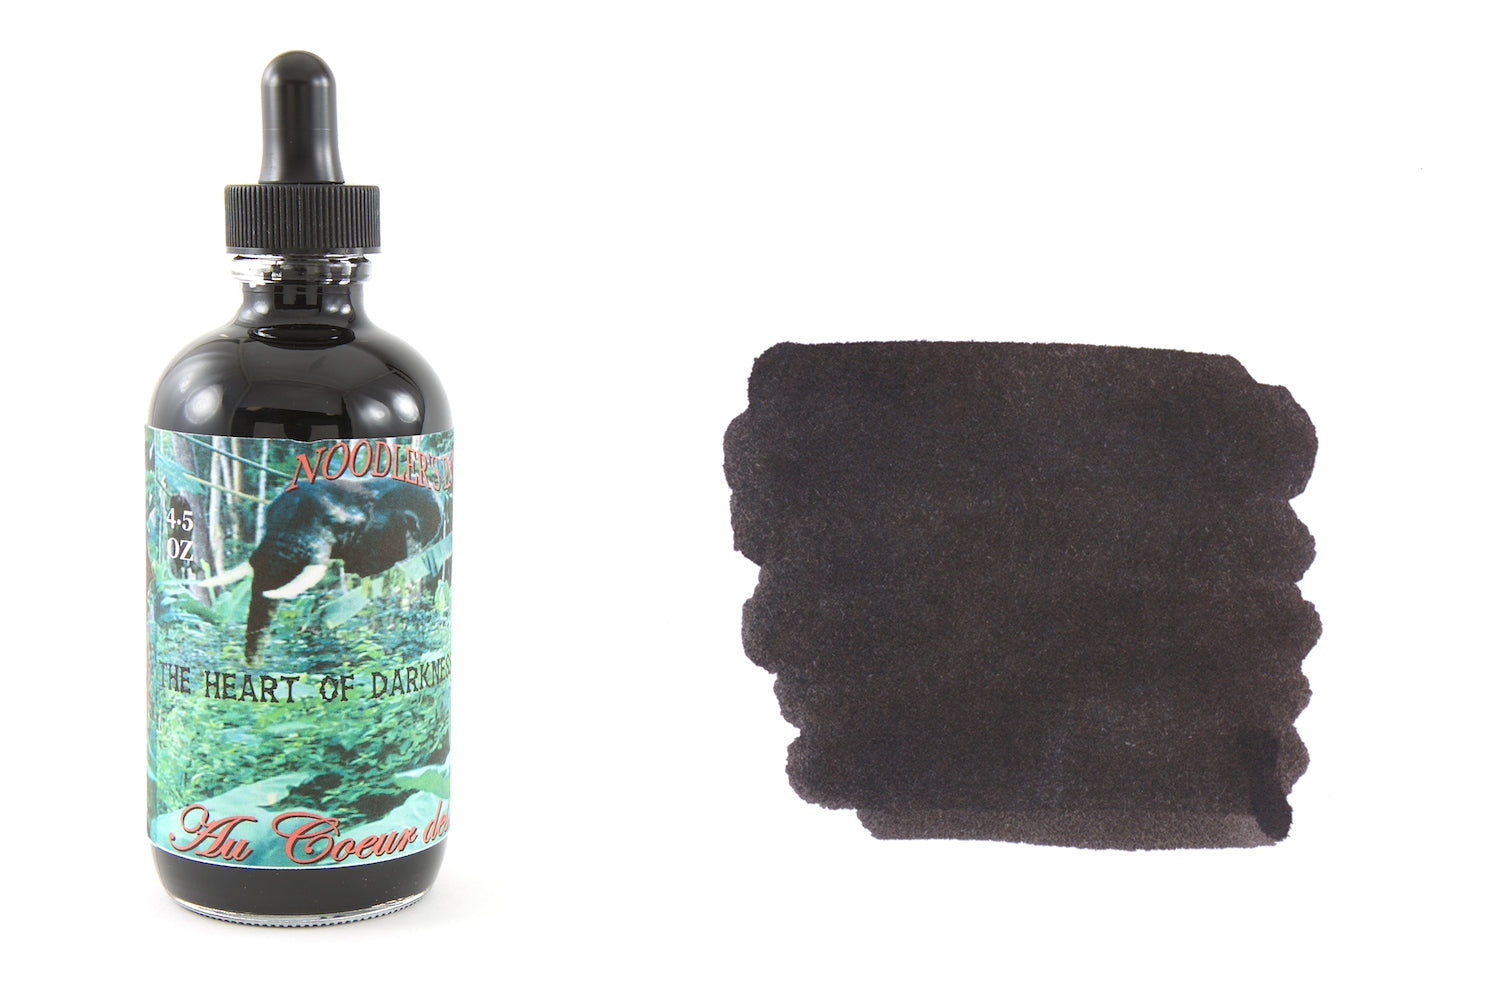 Noodler's Heart of Darkness - 4.5oz Bottled Ink with Free Charlie Pen